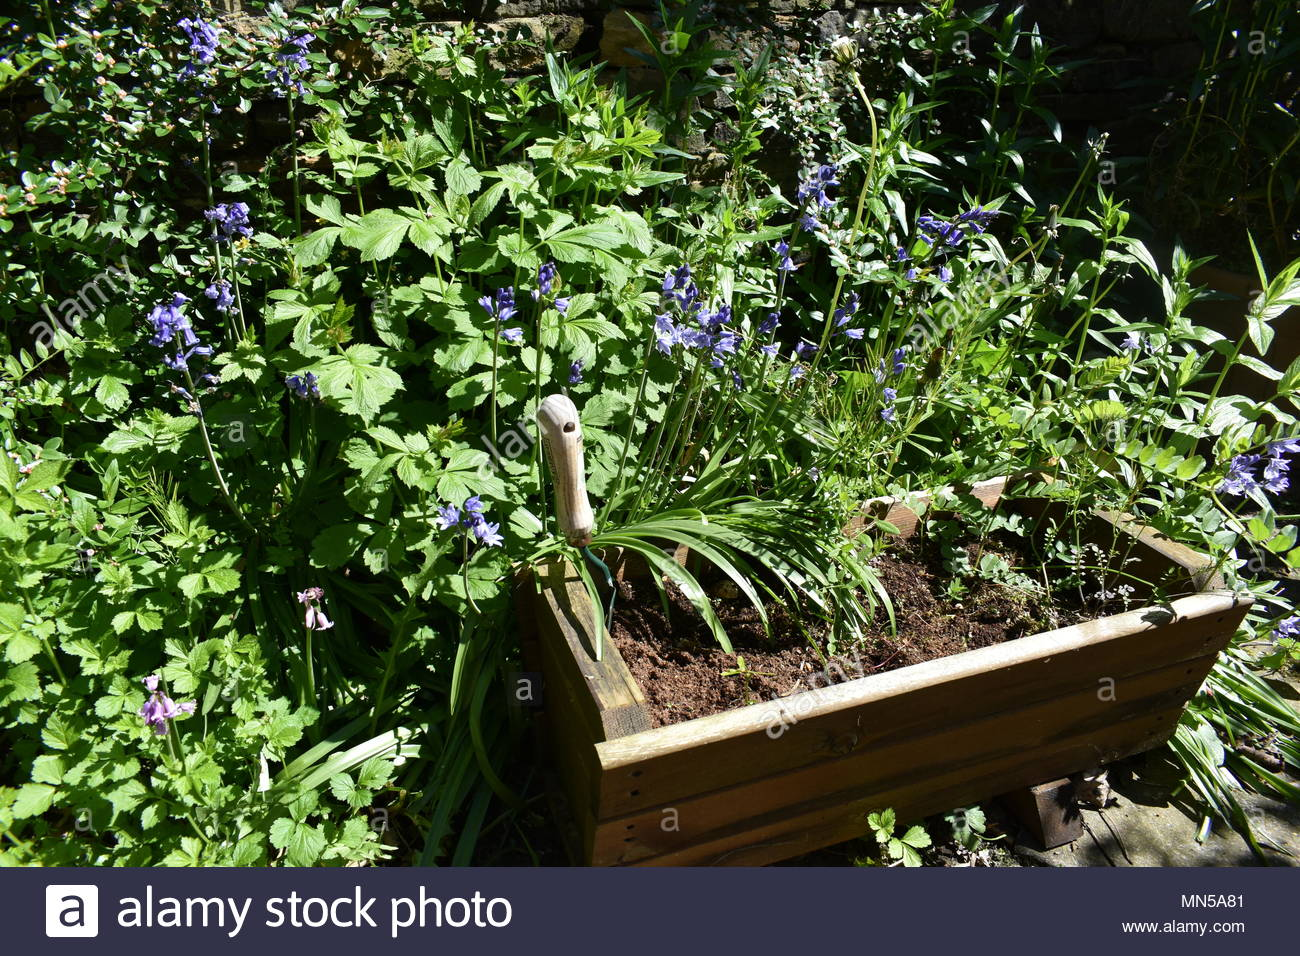 Garden shrubs - Stock Image